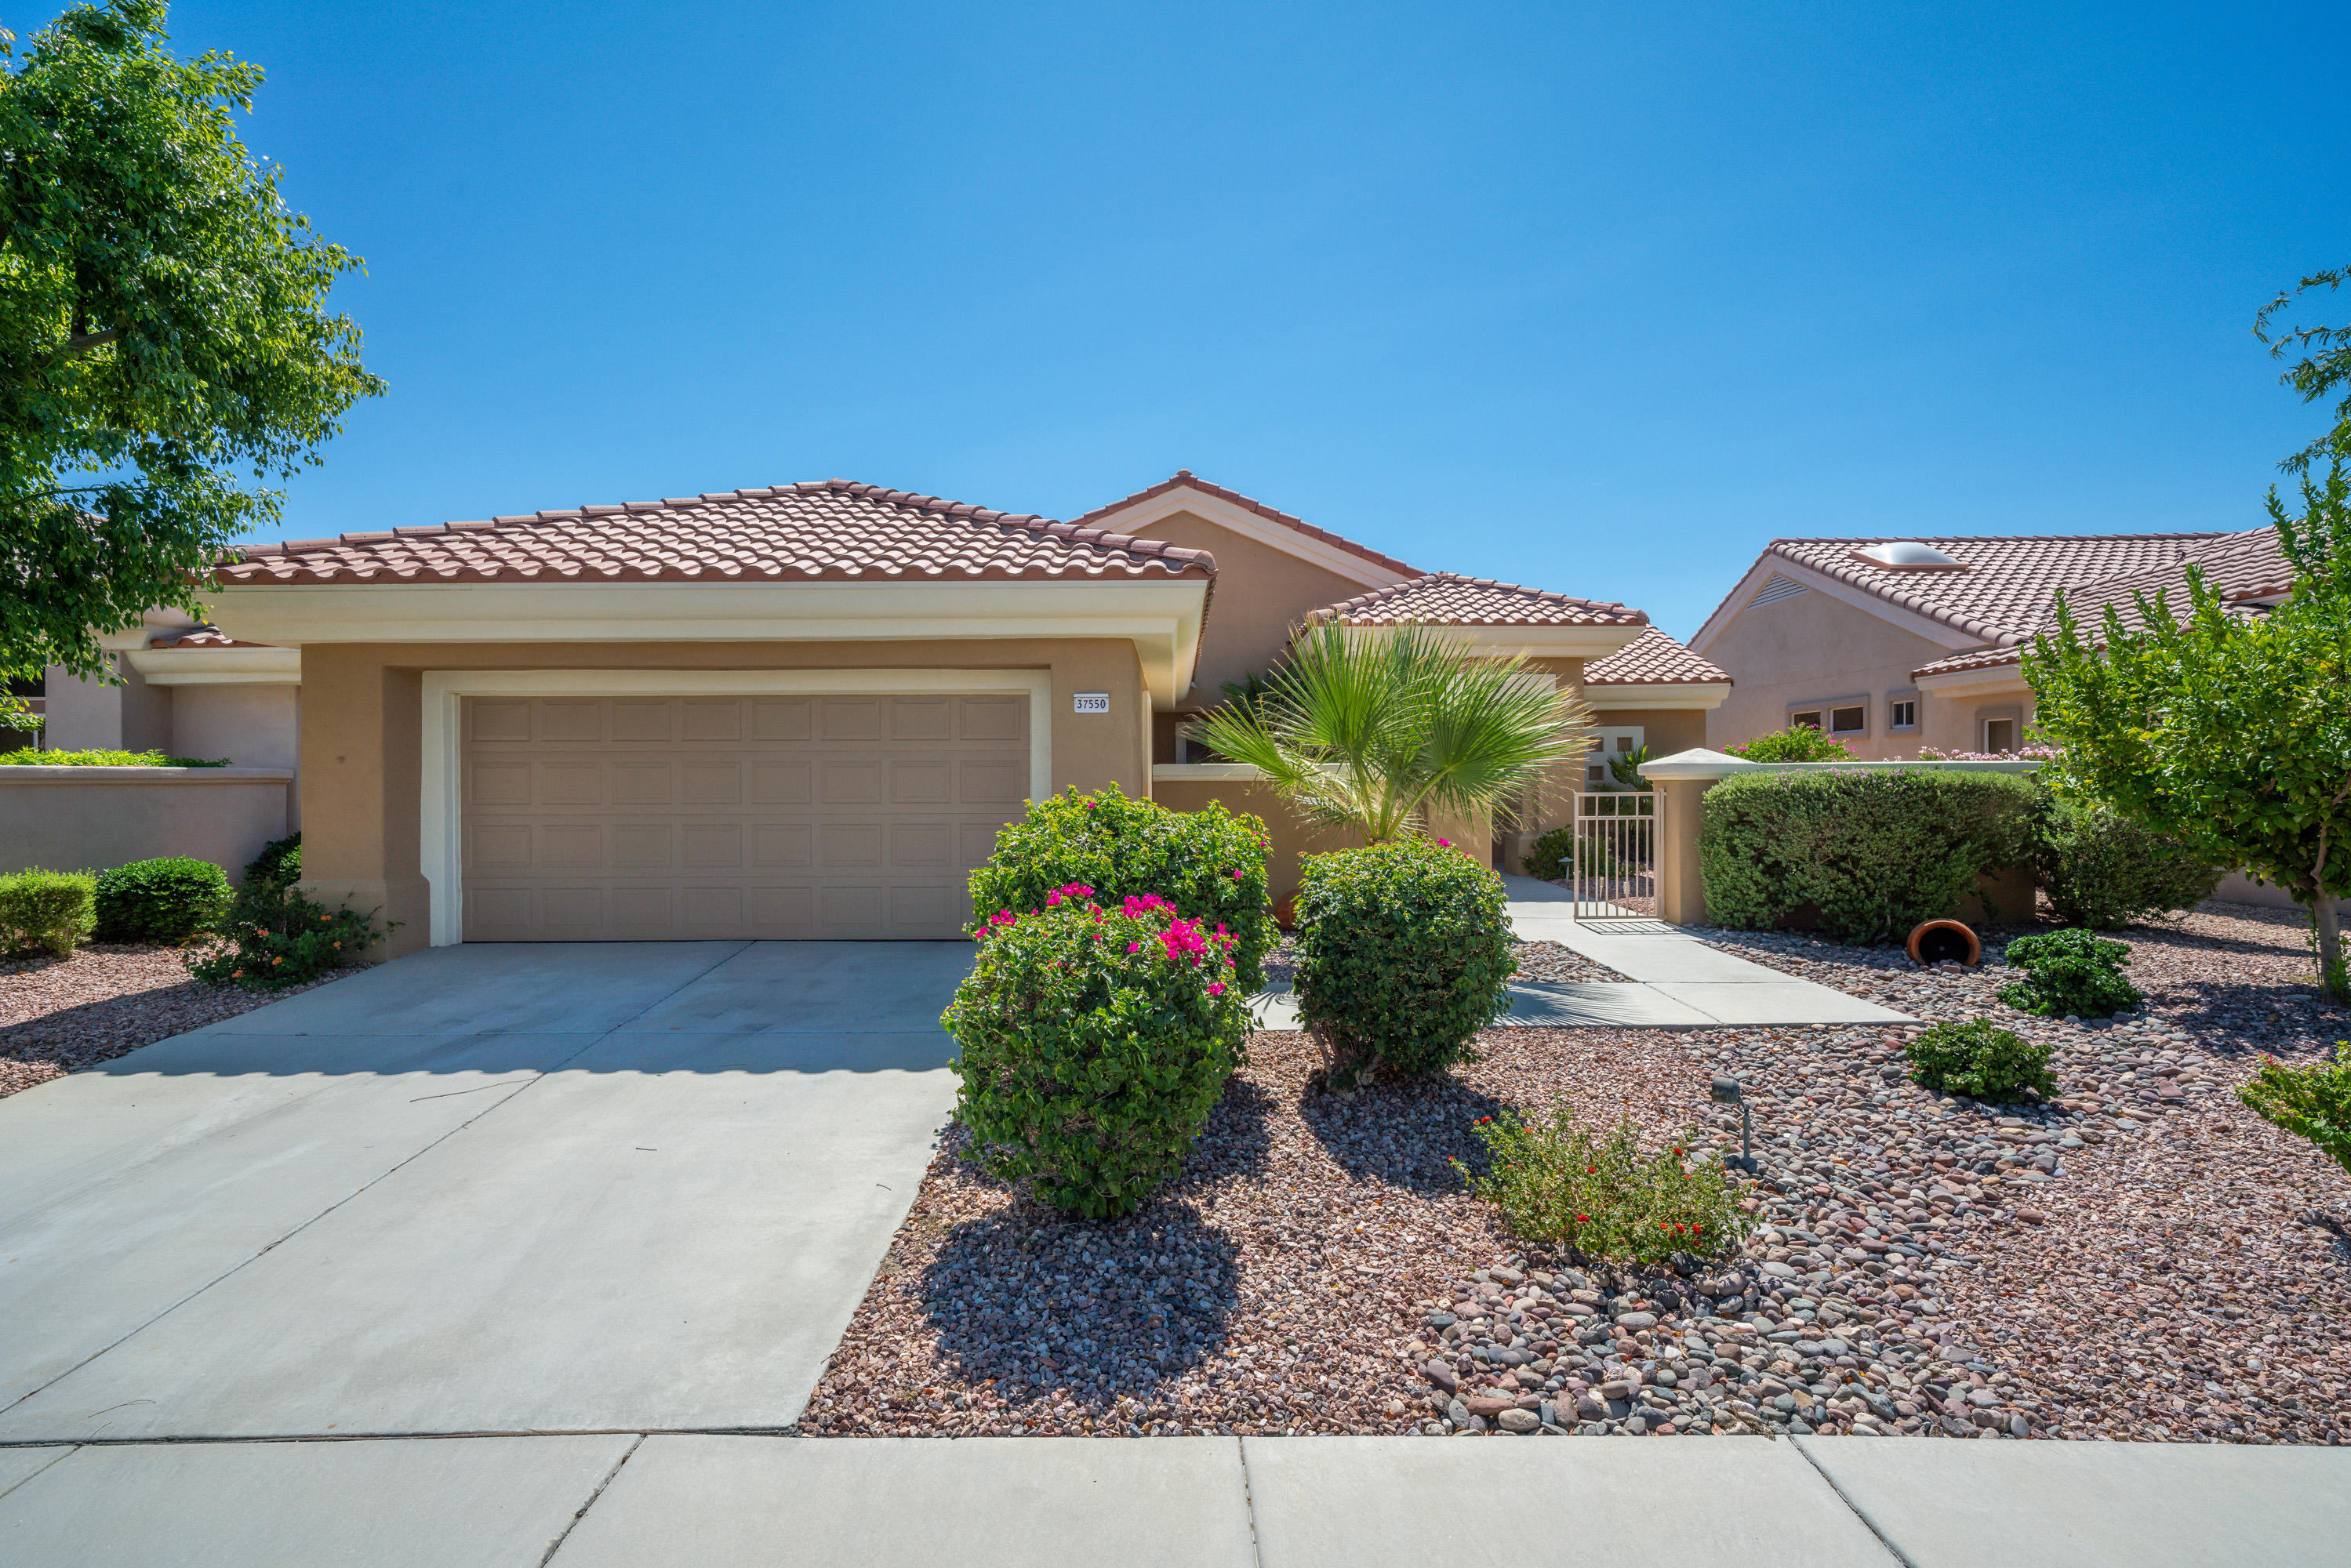 Photo of 37550 Eveningside Road, Palm Desert, CA 92211